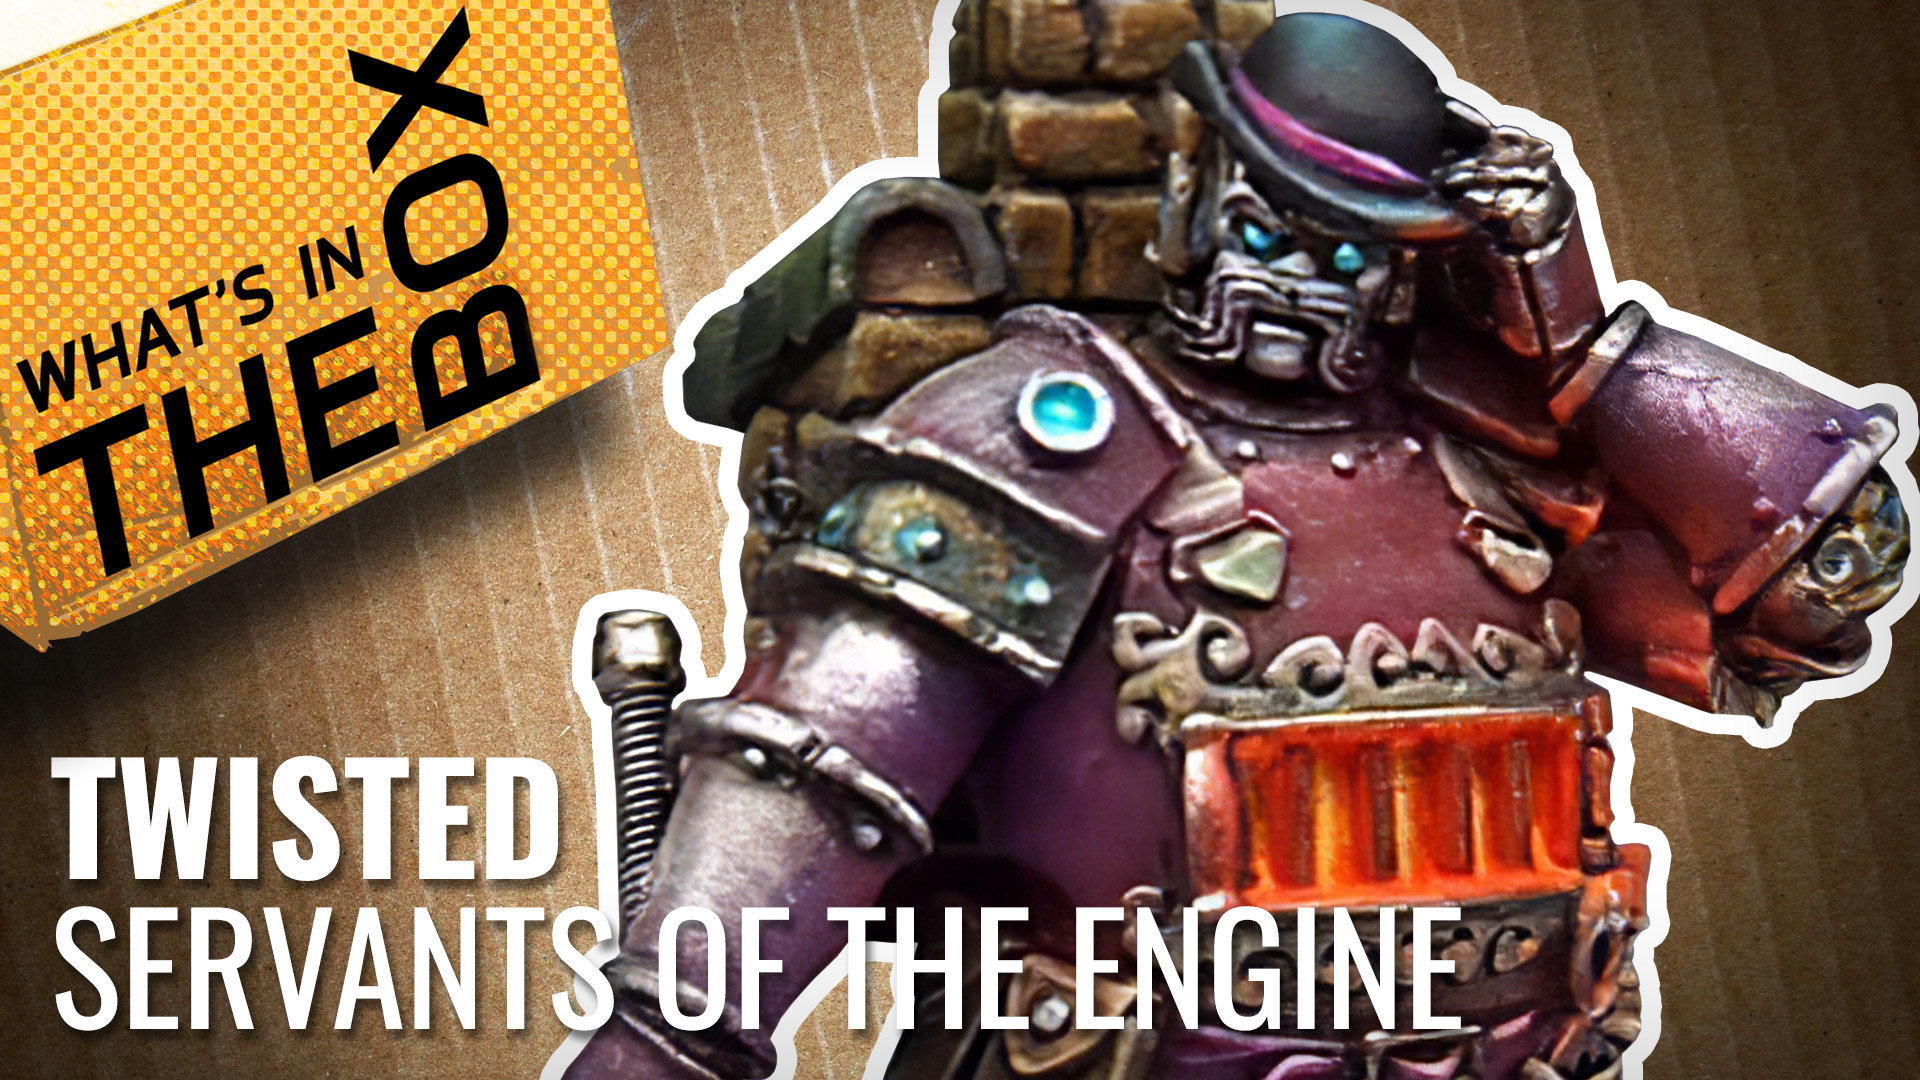 Unboxing---Servants-Of-The-Engine-coverimage